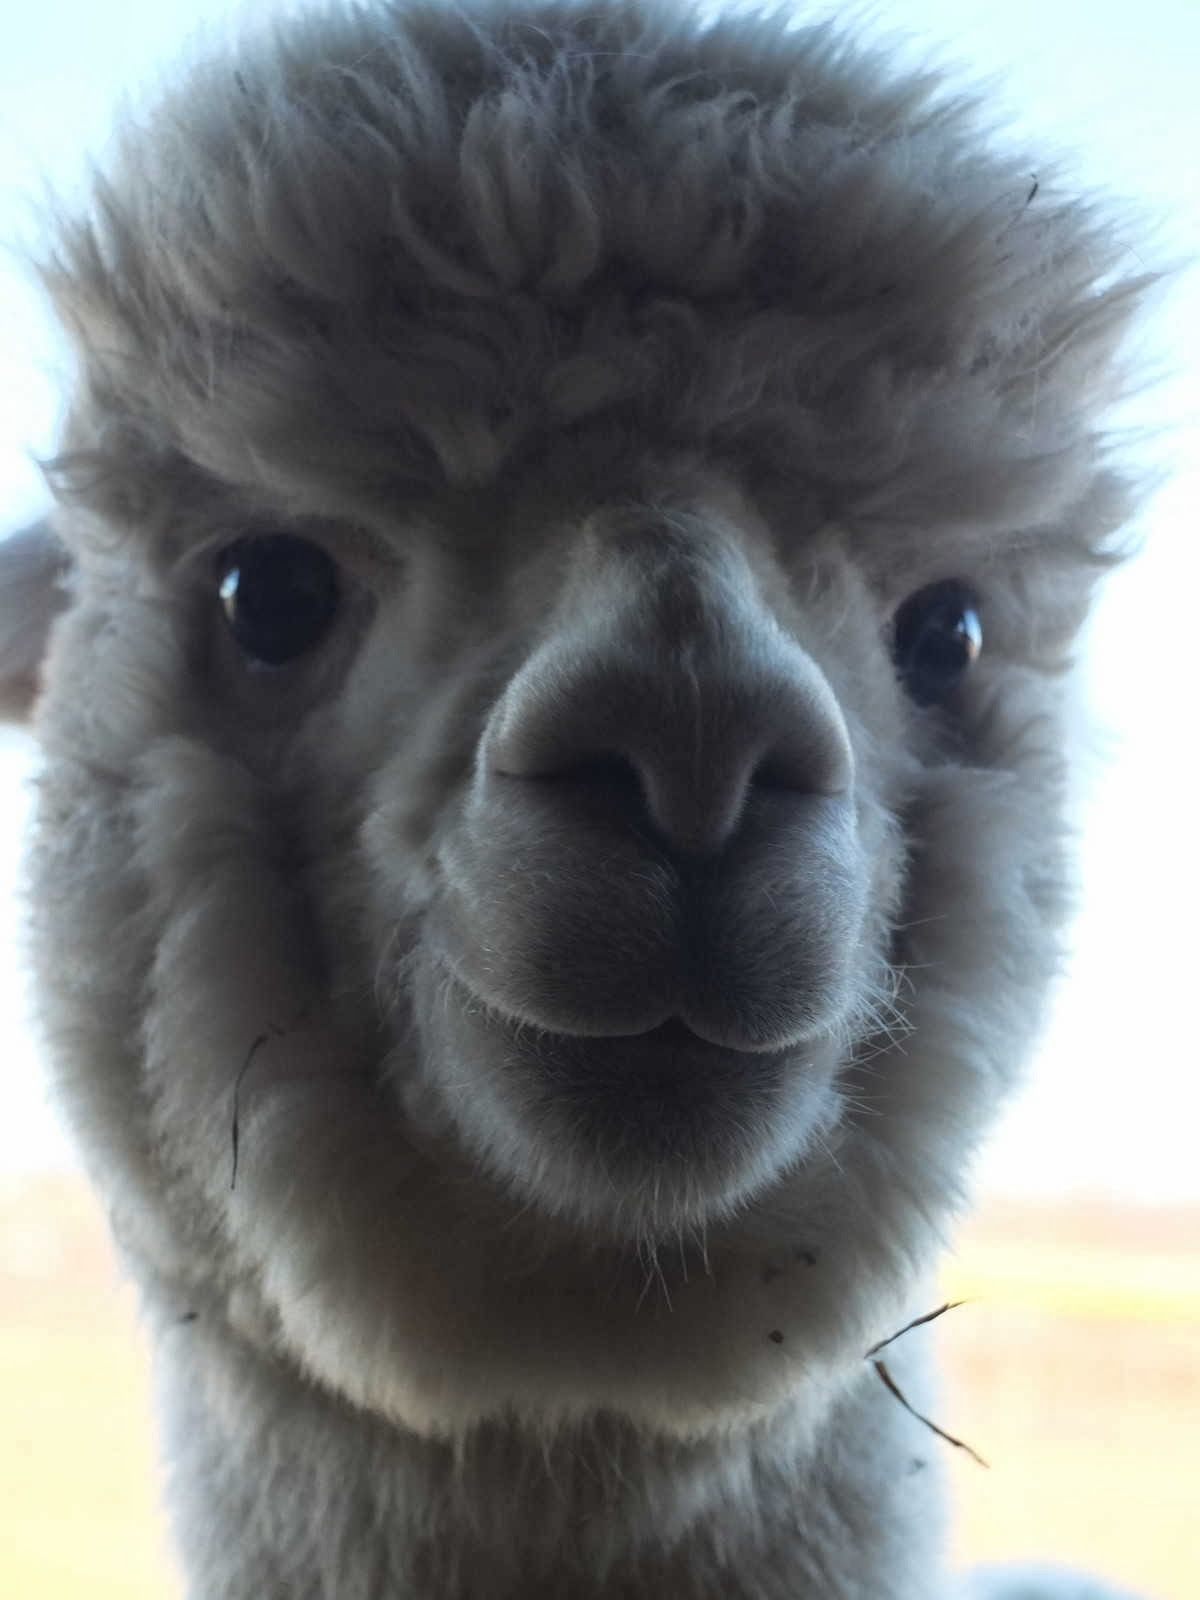 Funny animals of the week - 13 December 2013 (40 pics), beautiful alpaca pic